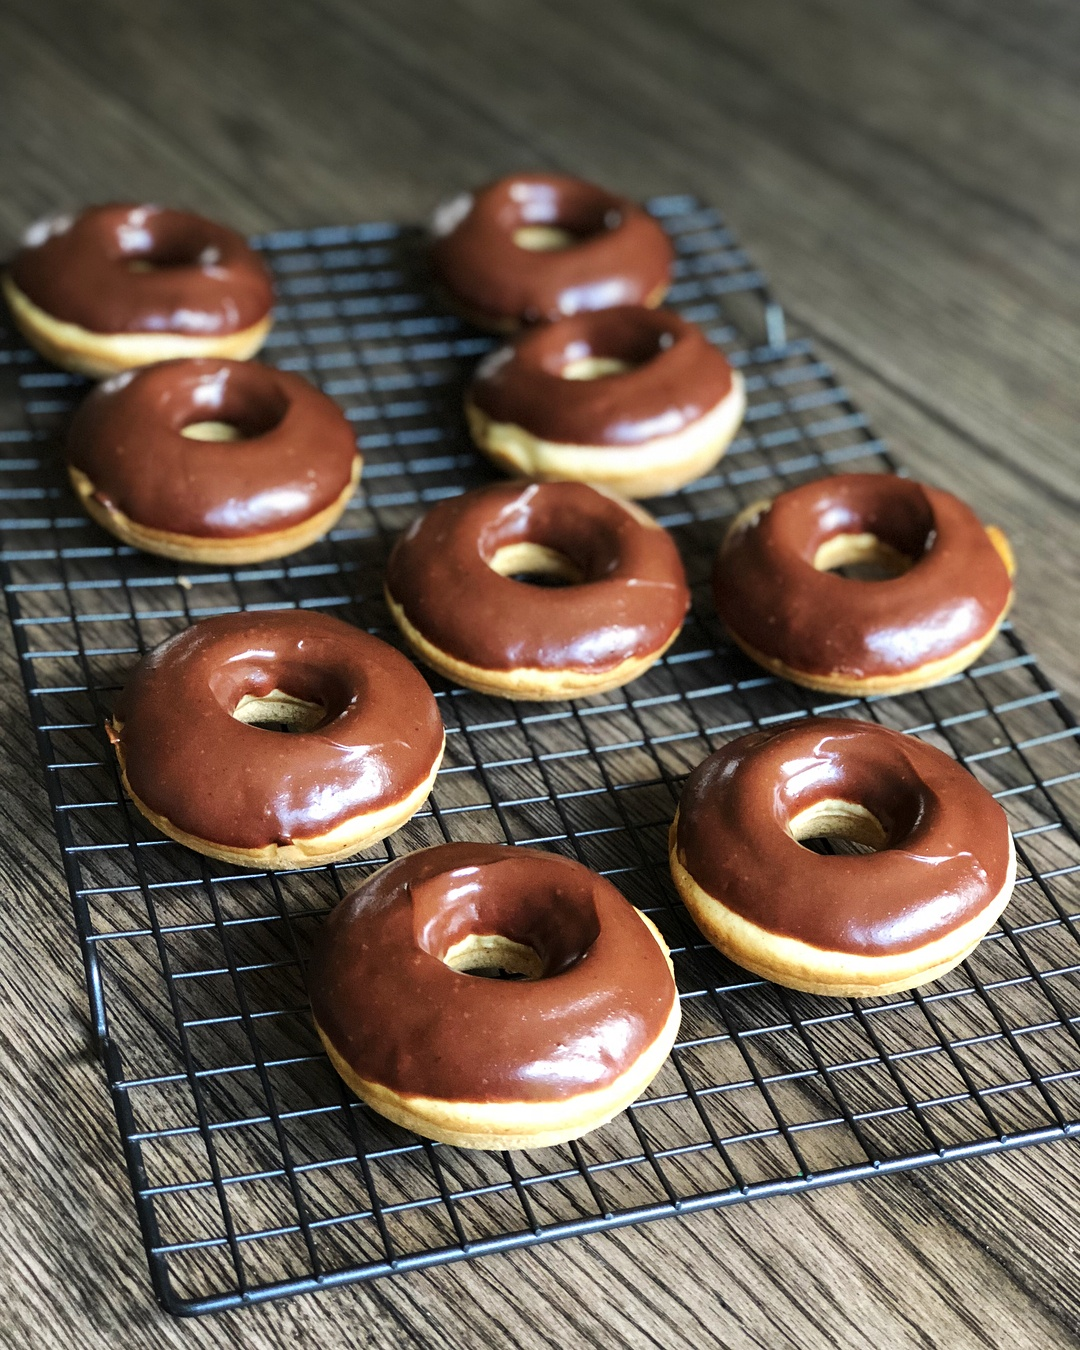 Healthy, Peanut Butter and Chocolate glazed baked donuts!